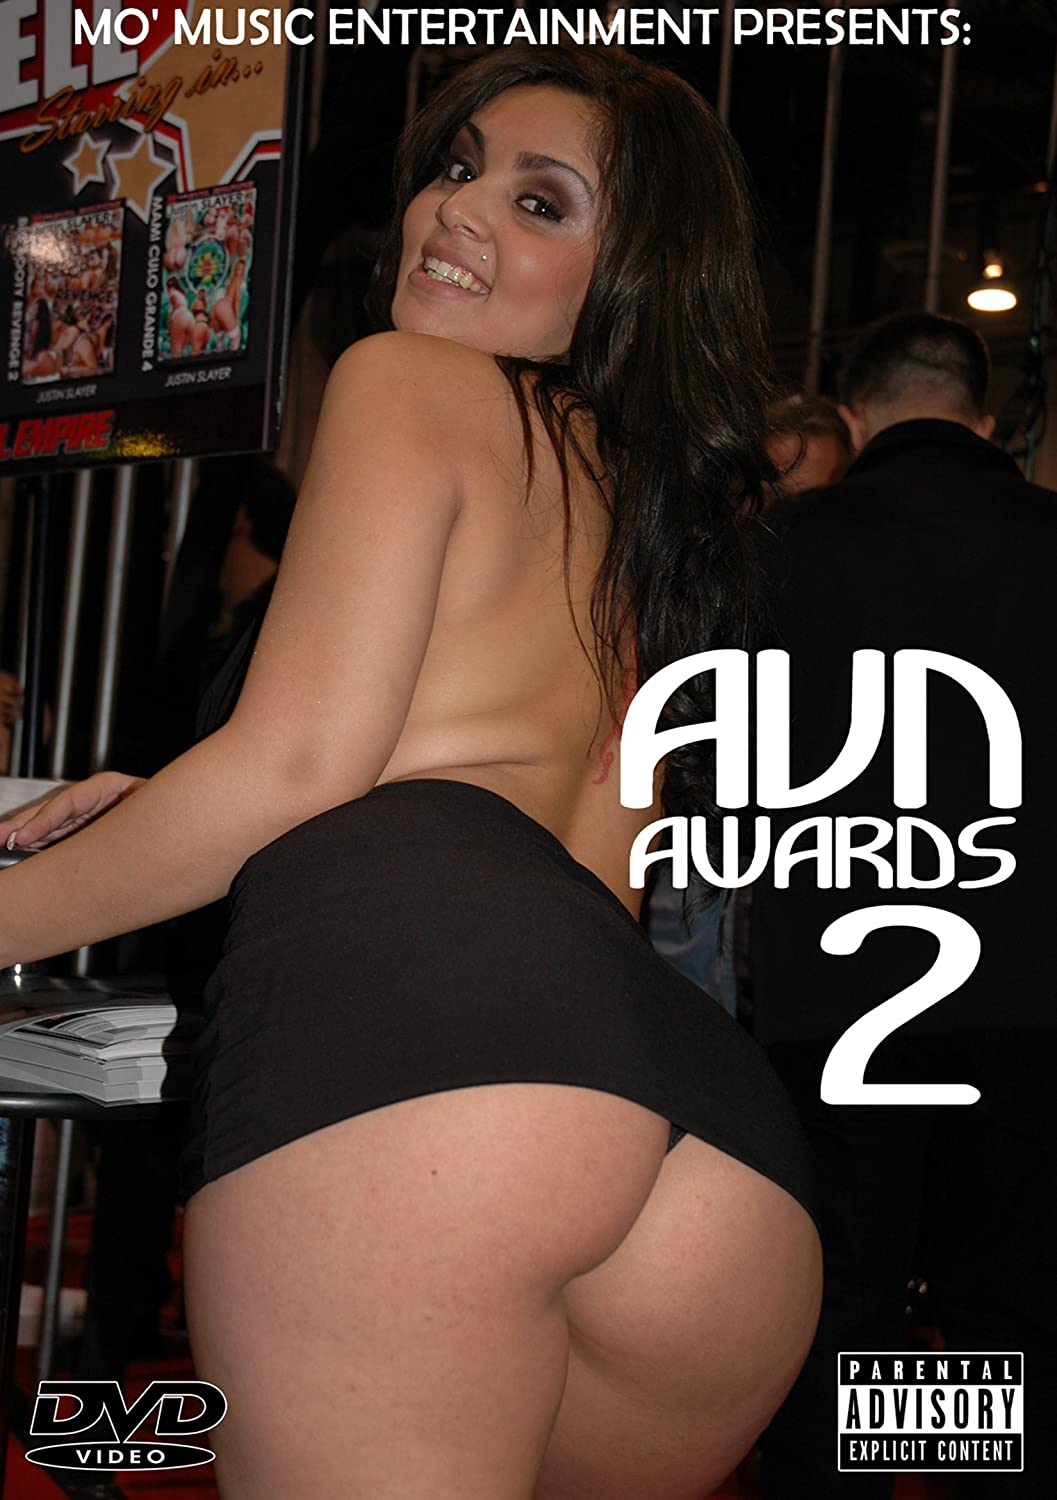 Amazon Avn Awards Part 2 Movies TV